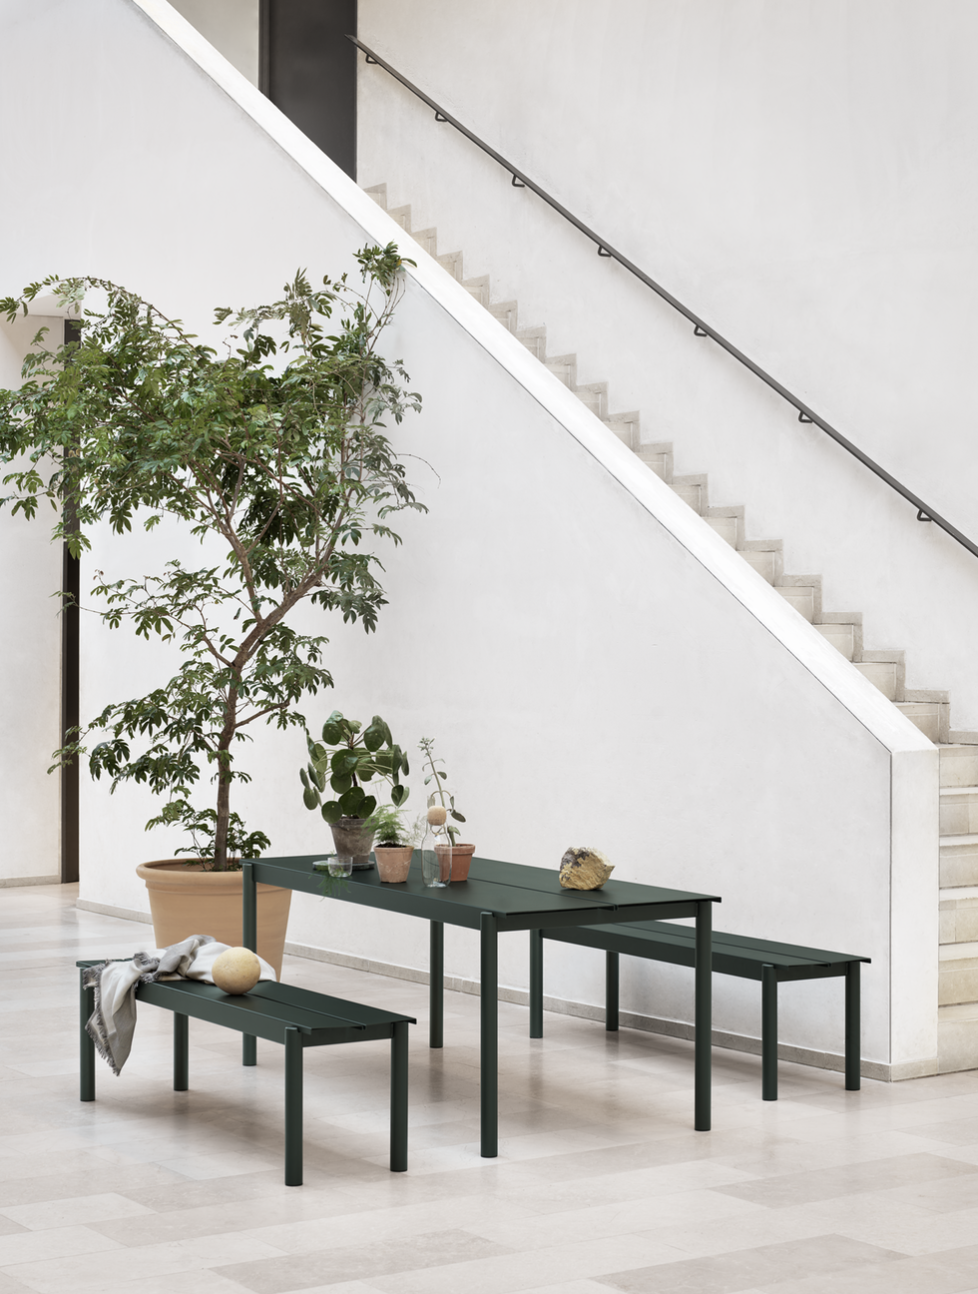 04.  MUUTO  -  LINEAR STEEL SERIES  metal outdoor furniture